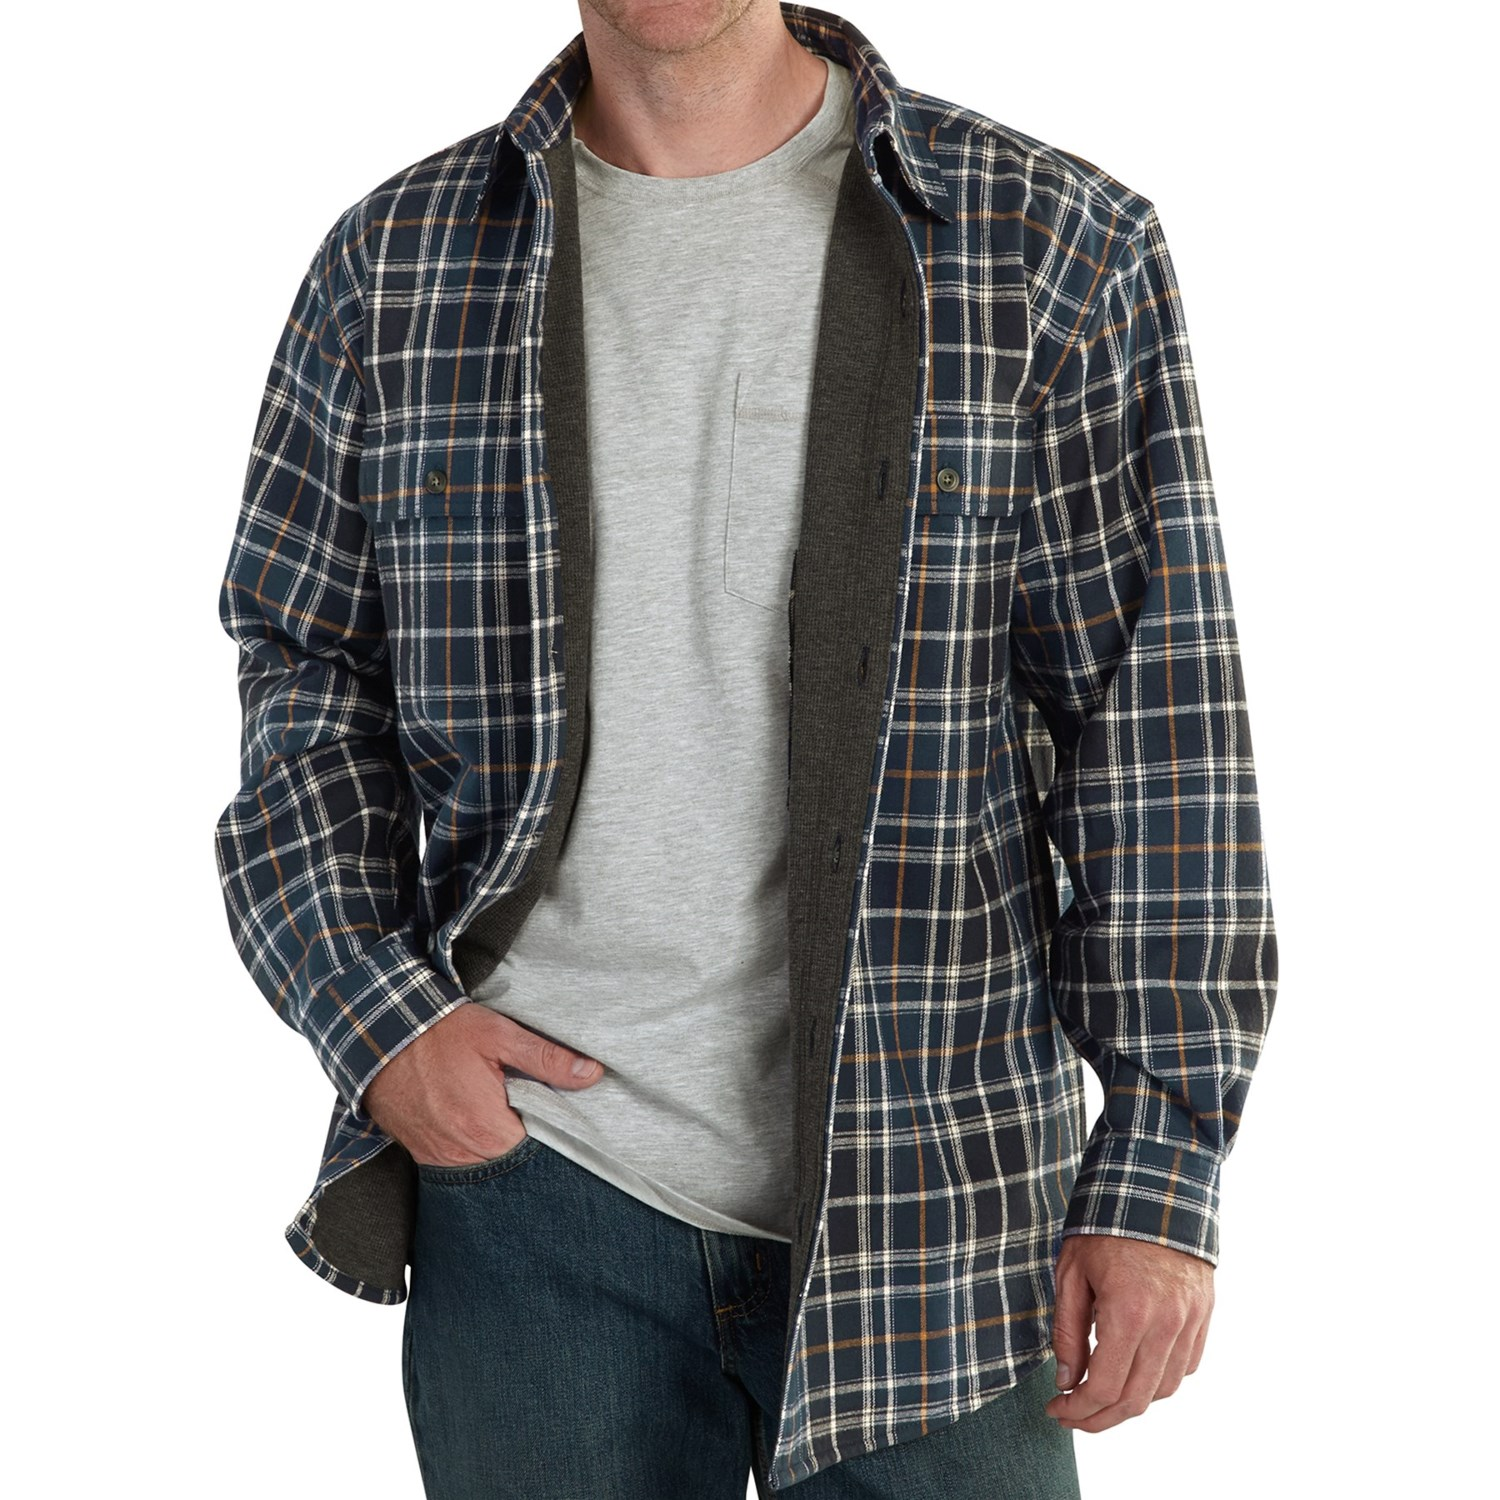 Men 39 s tall flannel shirt jacket long sweater jacket for Flannel shirt and vest